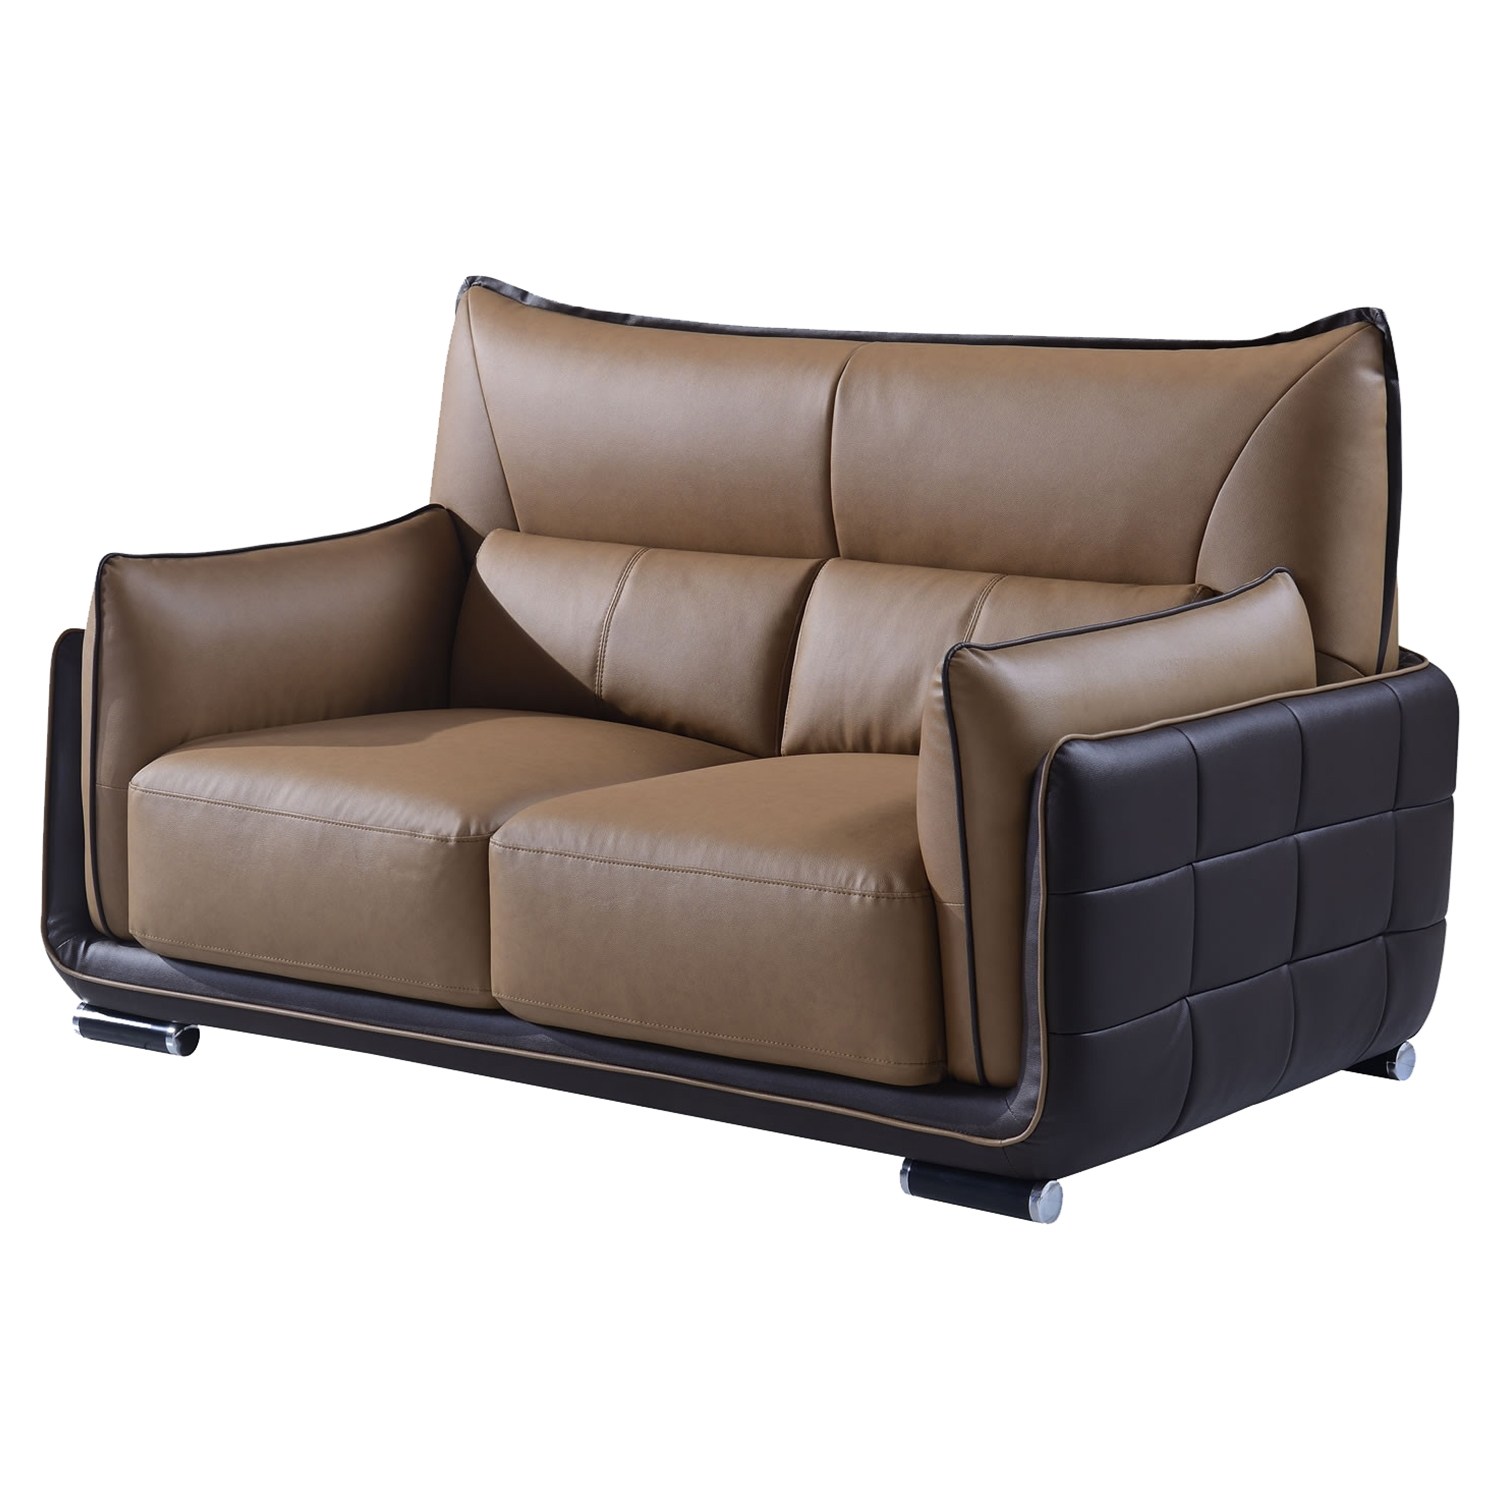 Kaden Brown Leather Loveseat - GLO-UFY220-RV-L